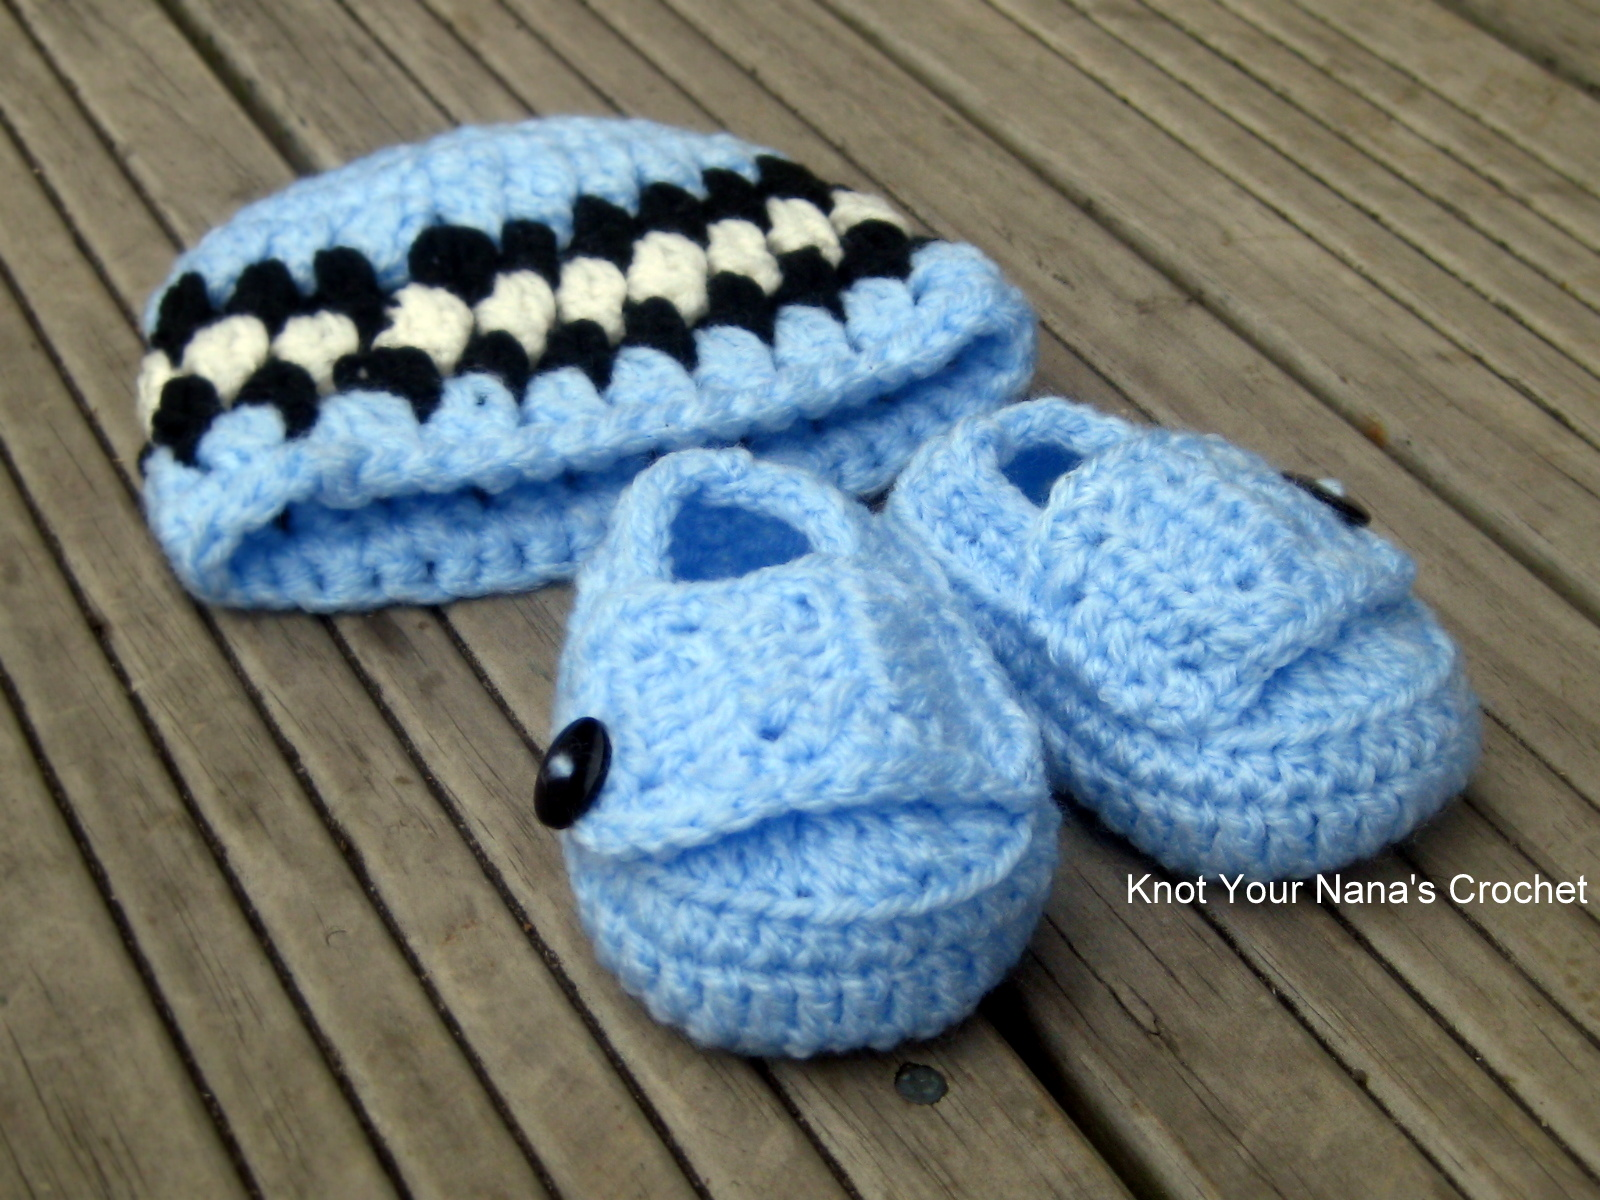 Knot Your Nanas Crochet: Crochet hat and booties set